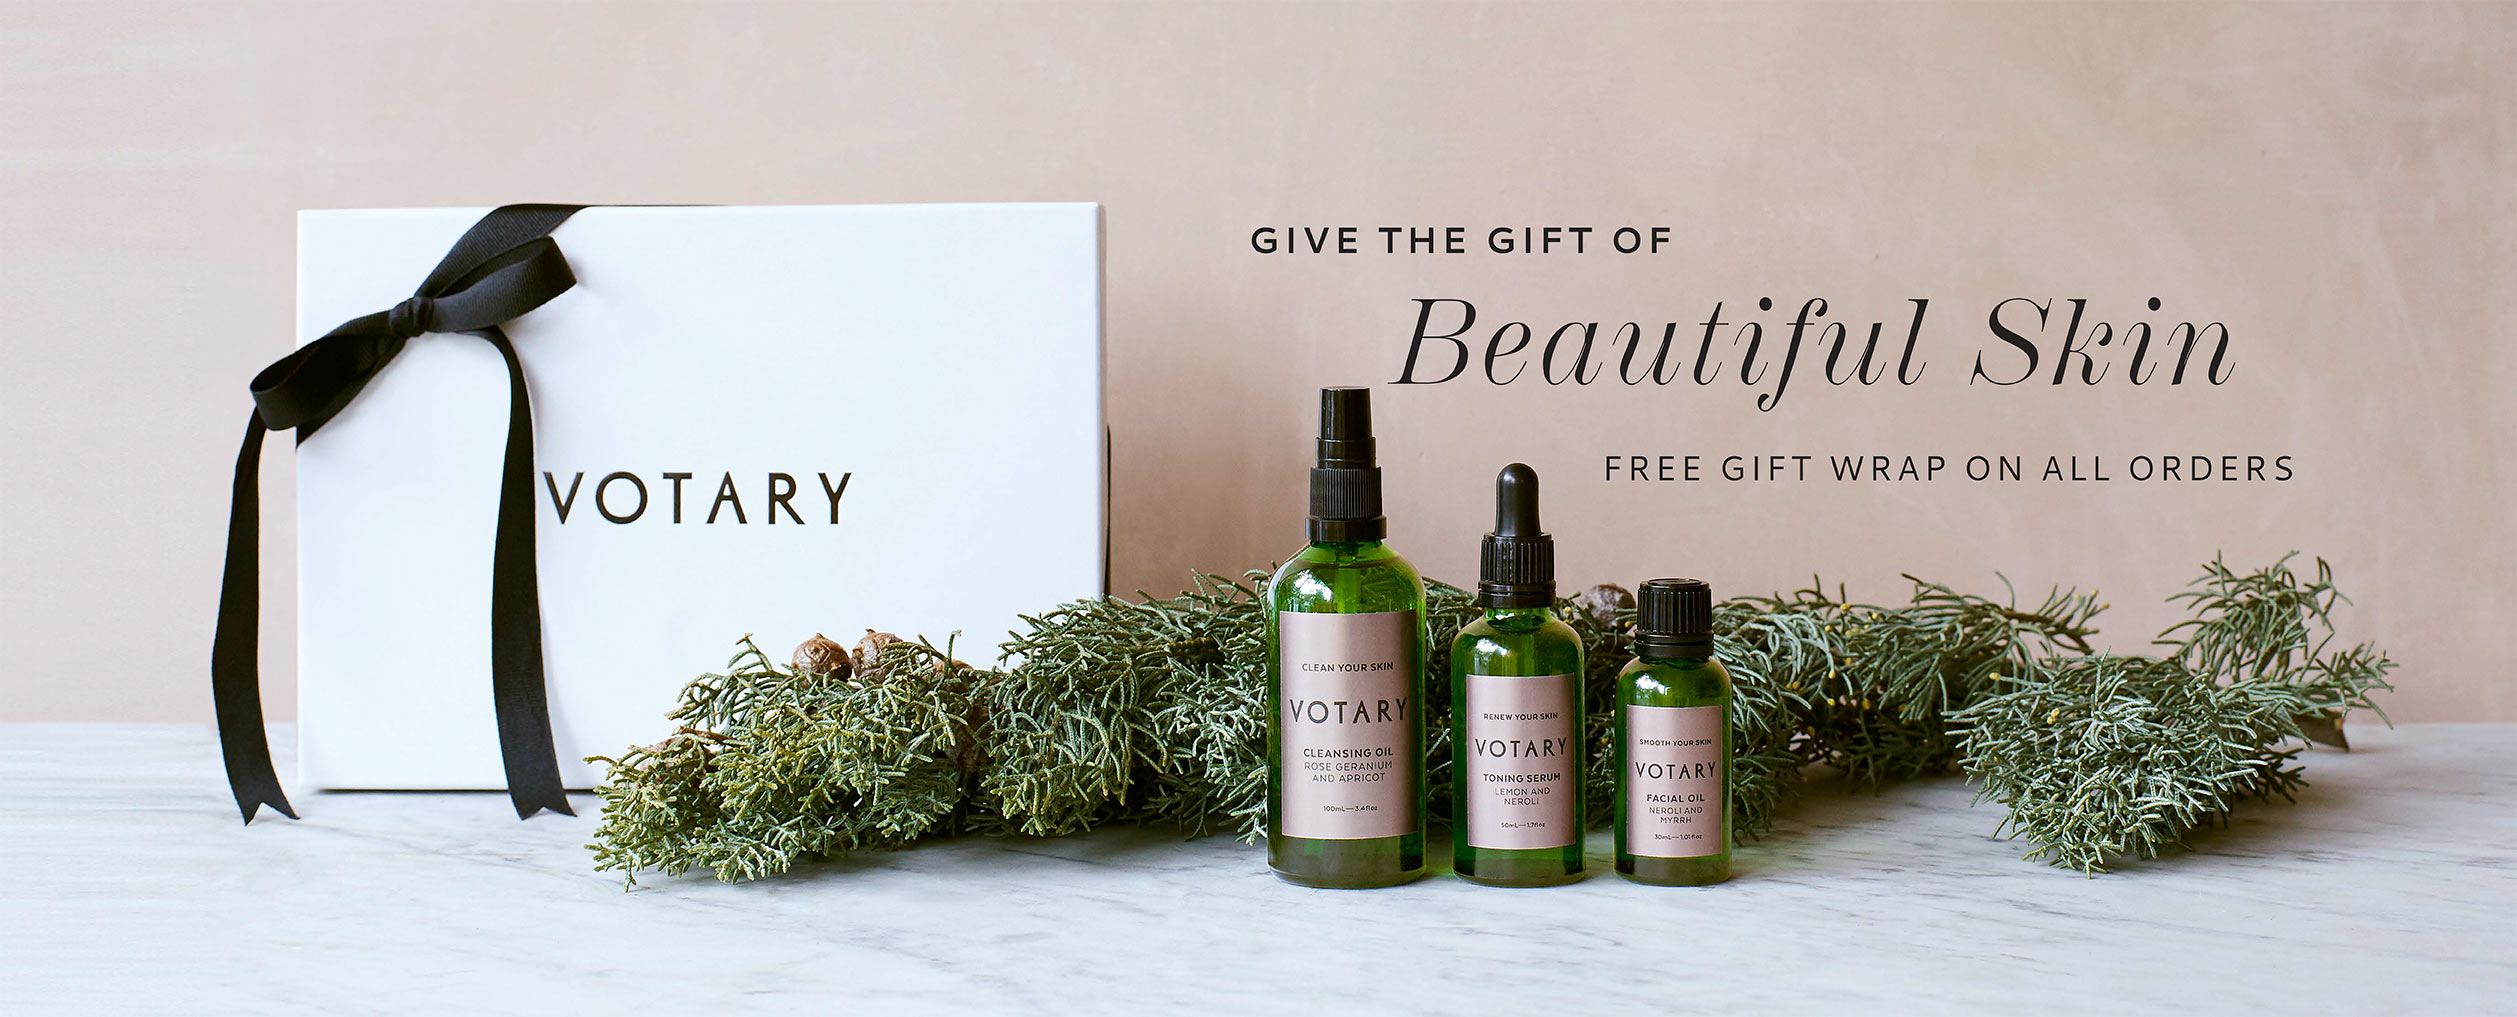 votary gift wrap 2